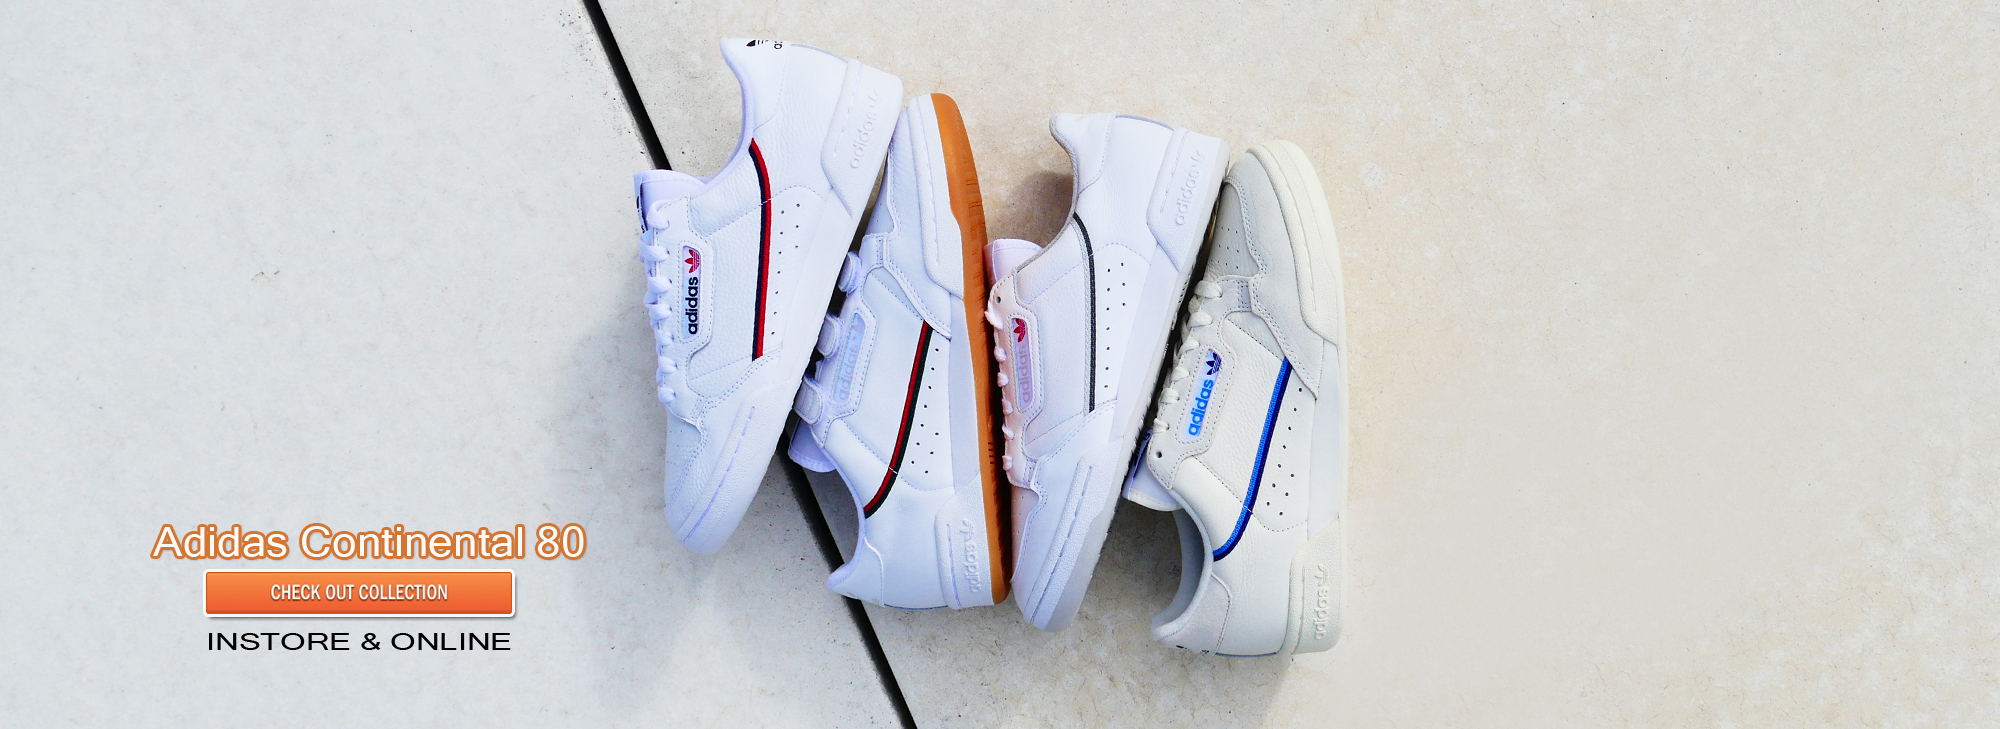 4732484adidas-continental-80-carroussel